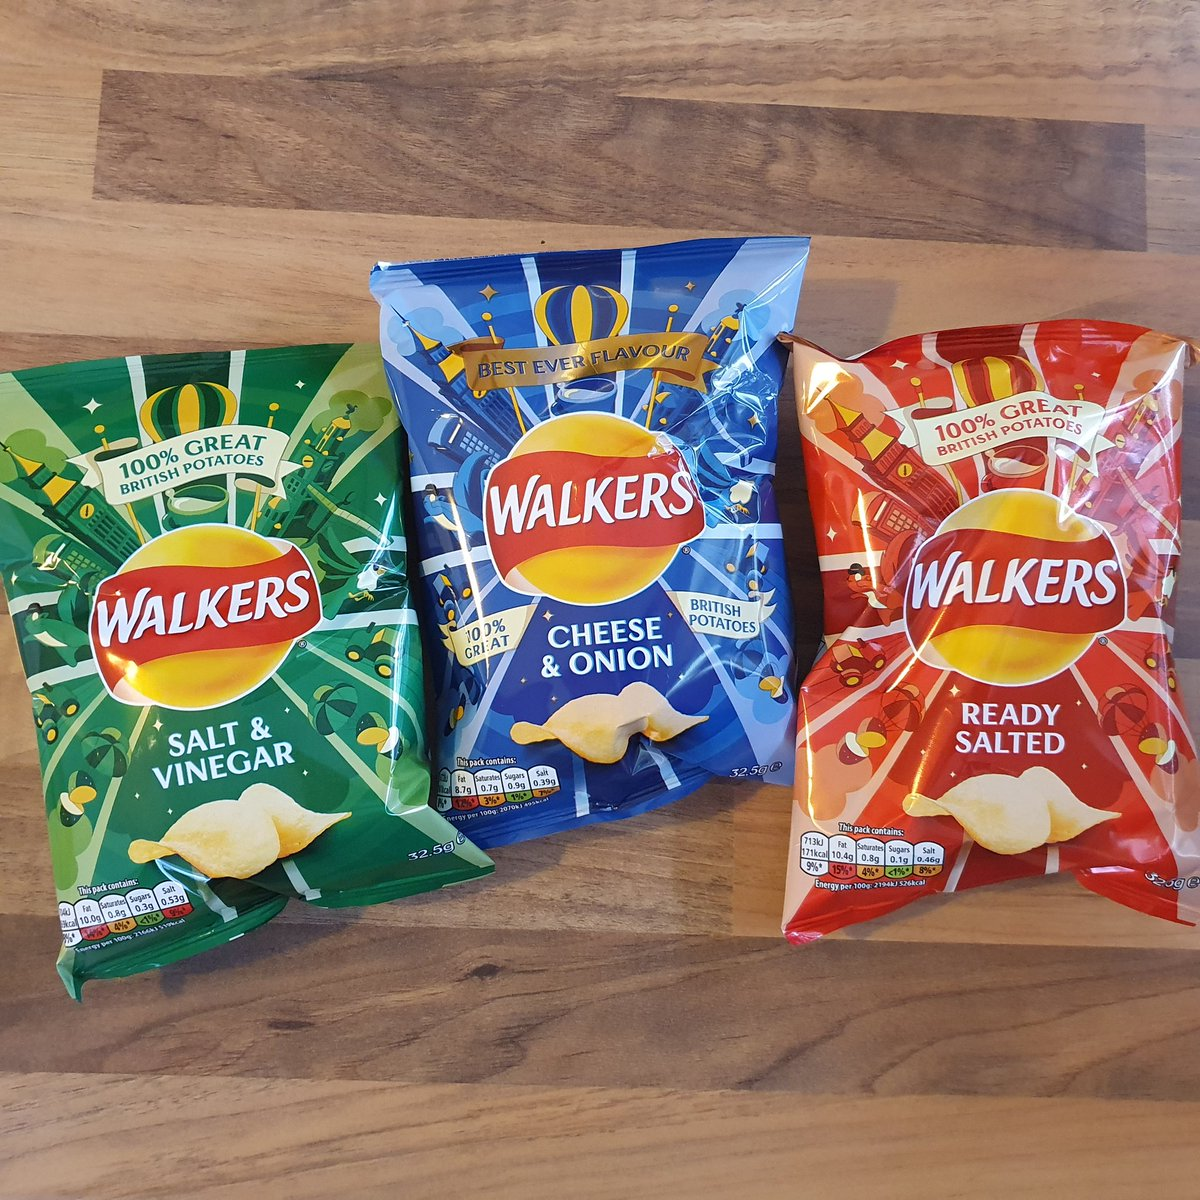 We now stock THE No.1 crisp brand. Three flavours of Walkers crisps available:  Salt and Vinegar,  Cheese and Onion and Ready Salted. Only 65p each.  #TheOB #Chatteris #Walkerscrisps pic.twitter.com/QKOAKz5Z78